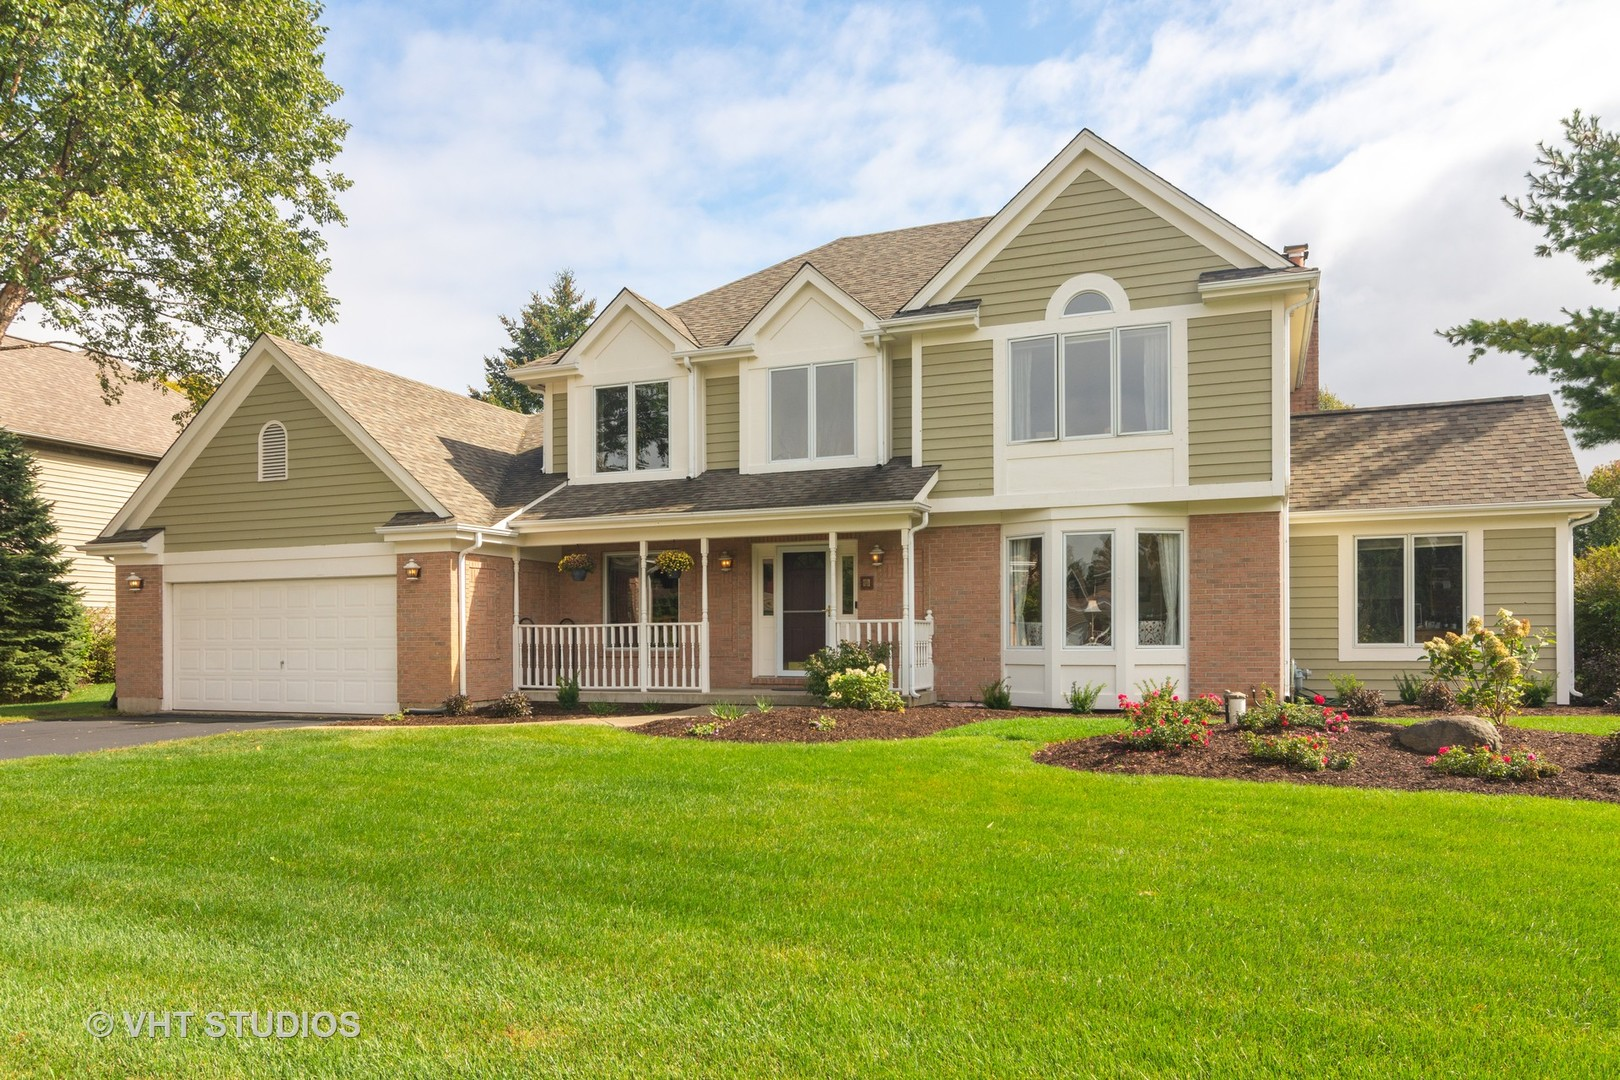 Photo for 7110 Swan Way, Cary, IL 60013 (MLS # 10830422)